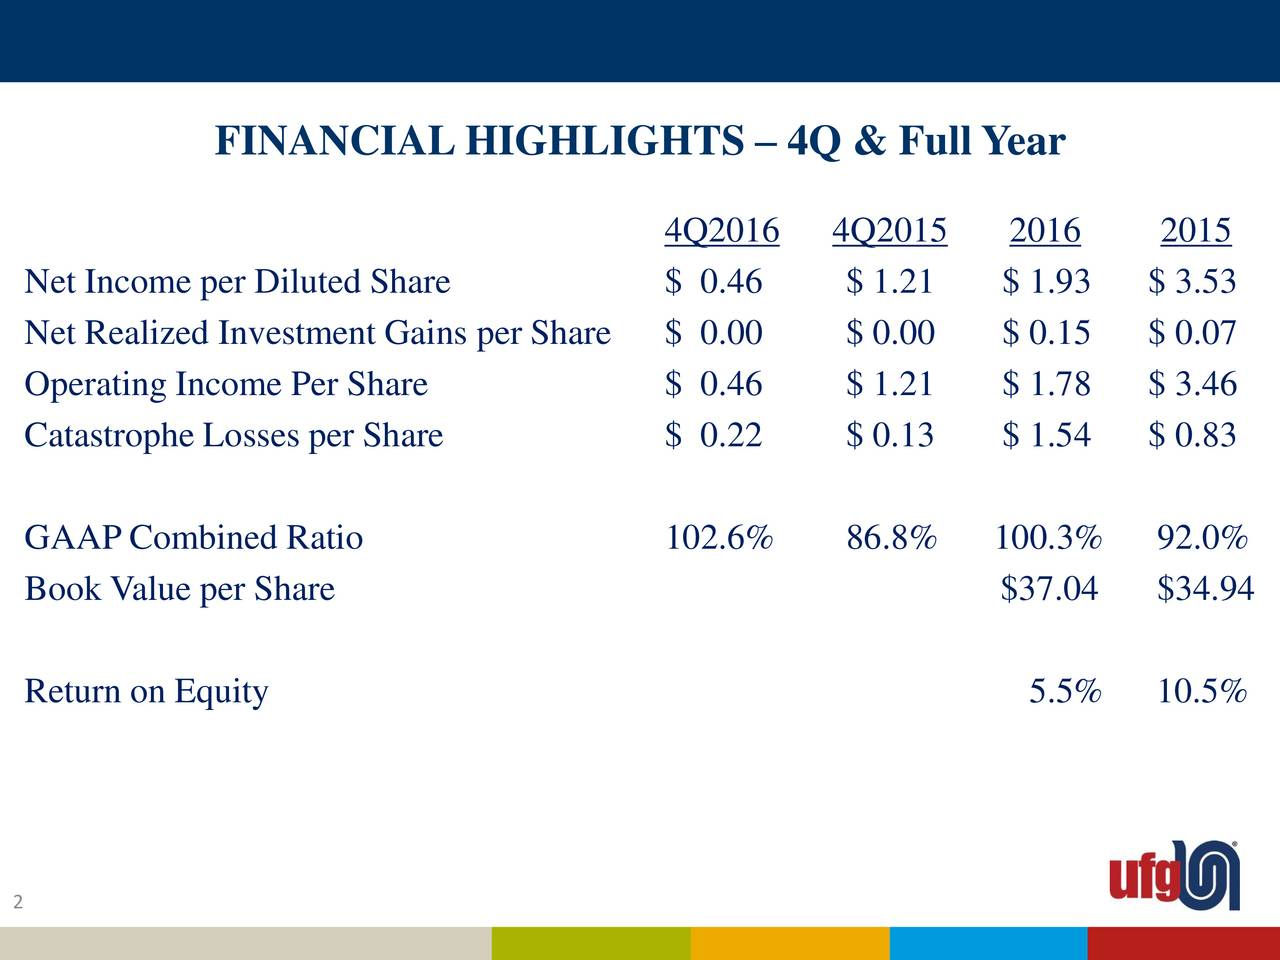 4Q2016 4Q2015 2016 2015 Net Income per Diluted Share $ 0.46 $ 1.21 $ 1.93 $ 3.53 Net Realized Investment Gains per Share $ 0.00 $ 0.00 $ 0.15 $ 0.07 Operating Income Per Share $ 0.46 $ 1.21 $ 1.78 $ 3.46 Catastrophe Losses per Share $ 0.22 $ 0.13 $ 1.54 $ 0.83 GAAP Combined Ratio 102.6% 86.8% 100.3% 92.0% Book Value per Share $37.04 $34.94 Return on Equity 5.5% 10.5% 2